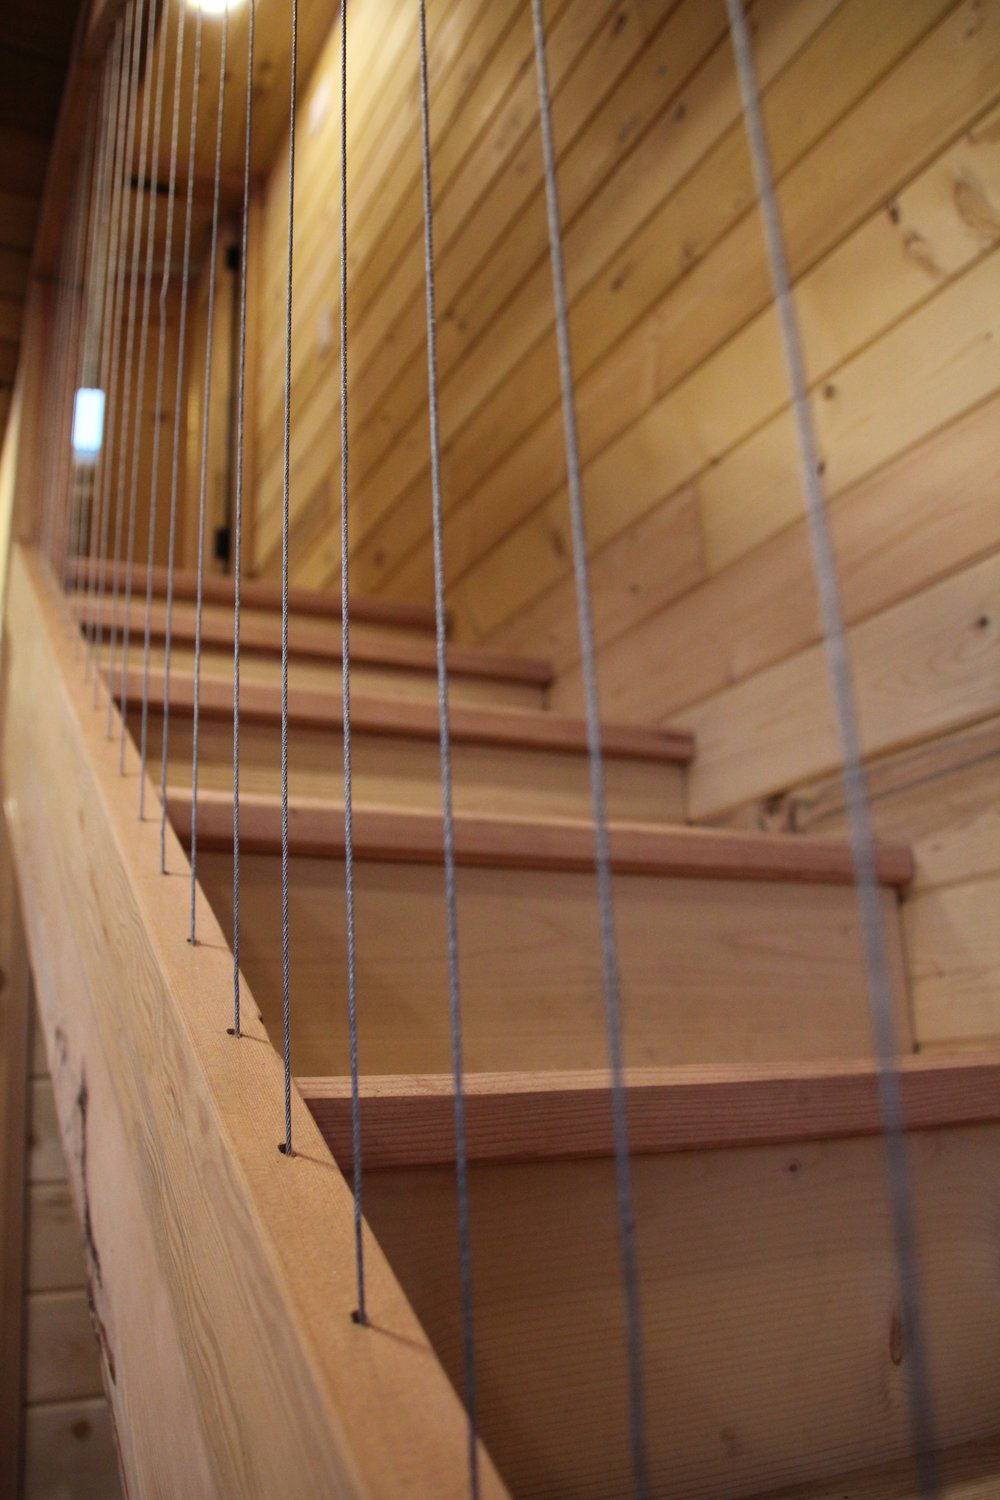 The use of catenary wire gives the stairs an open feeling while keeping it safe for the wee ones.